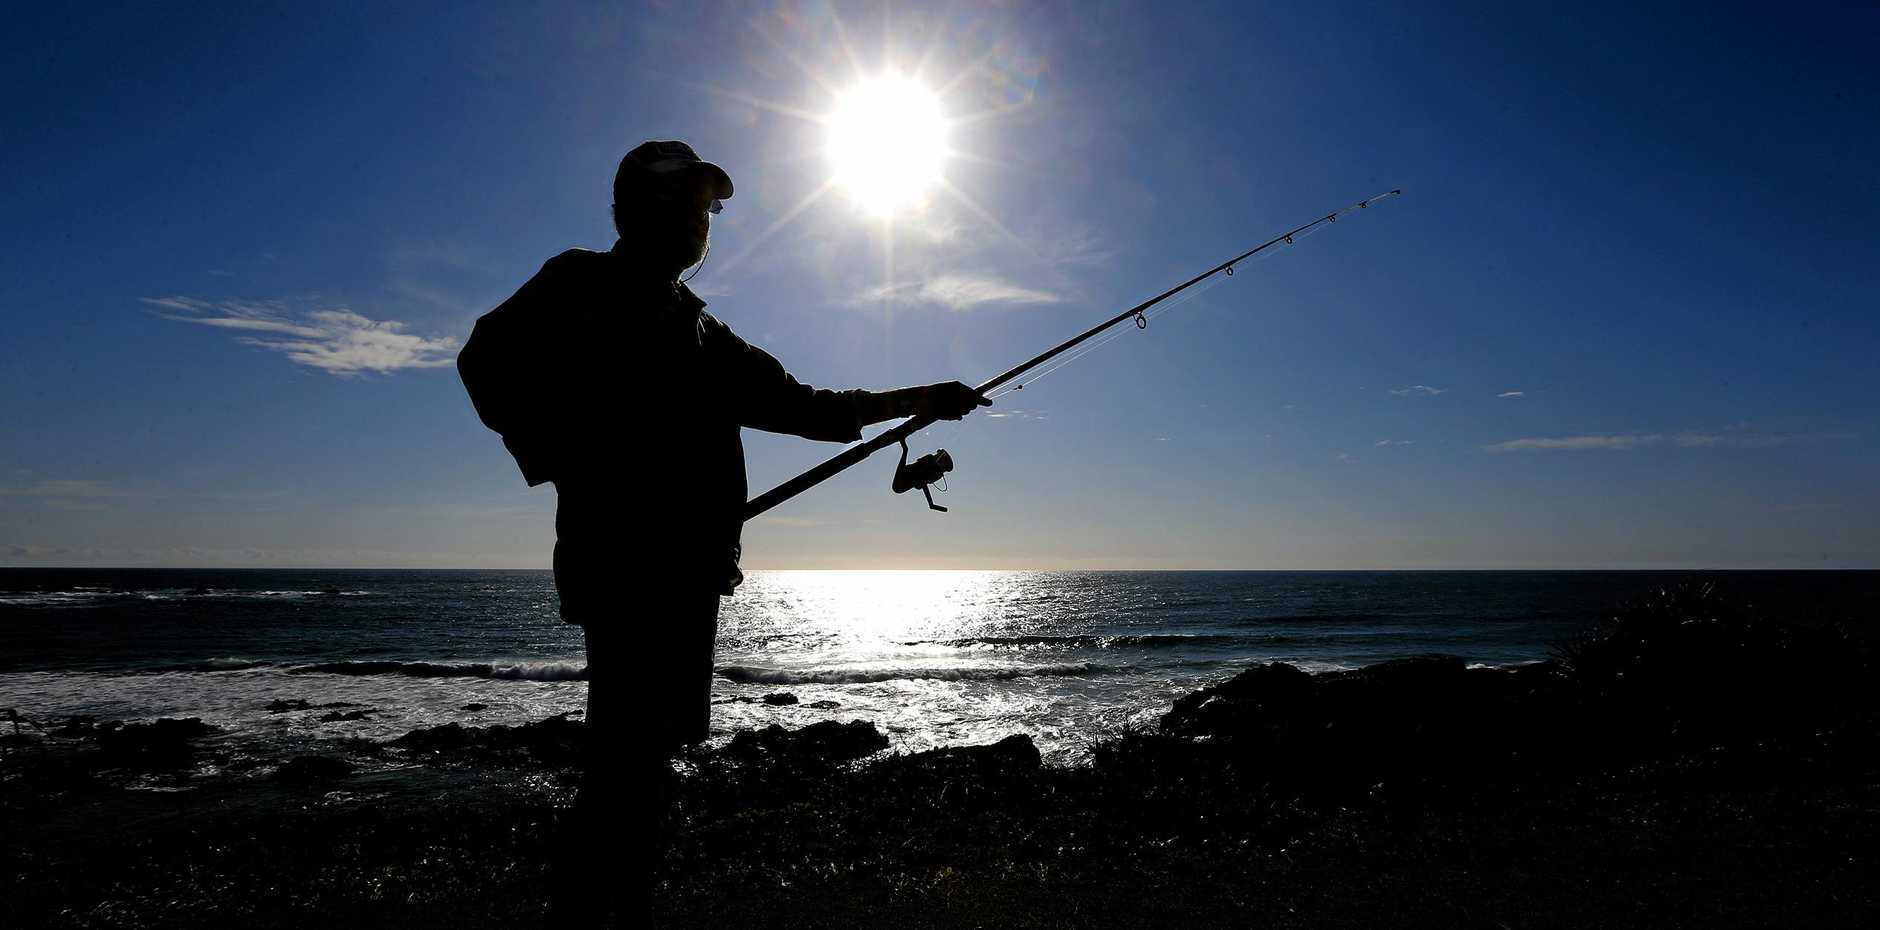 Never fear, future fishing star, we have compiled a simple, yet effective list of the five things you need to do to catch your first fish.